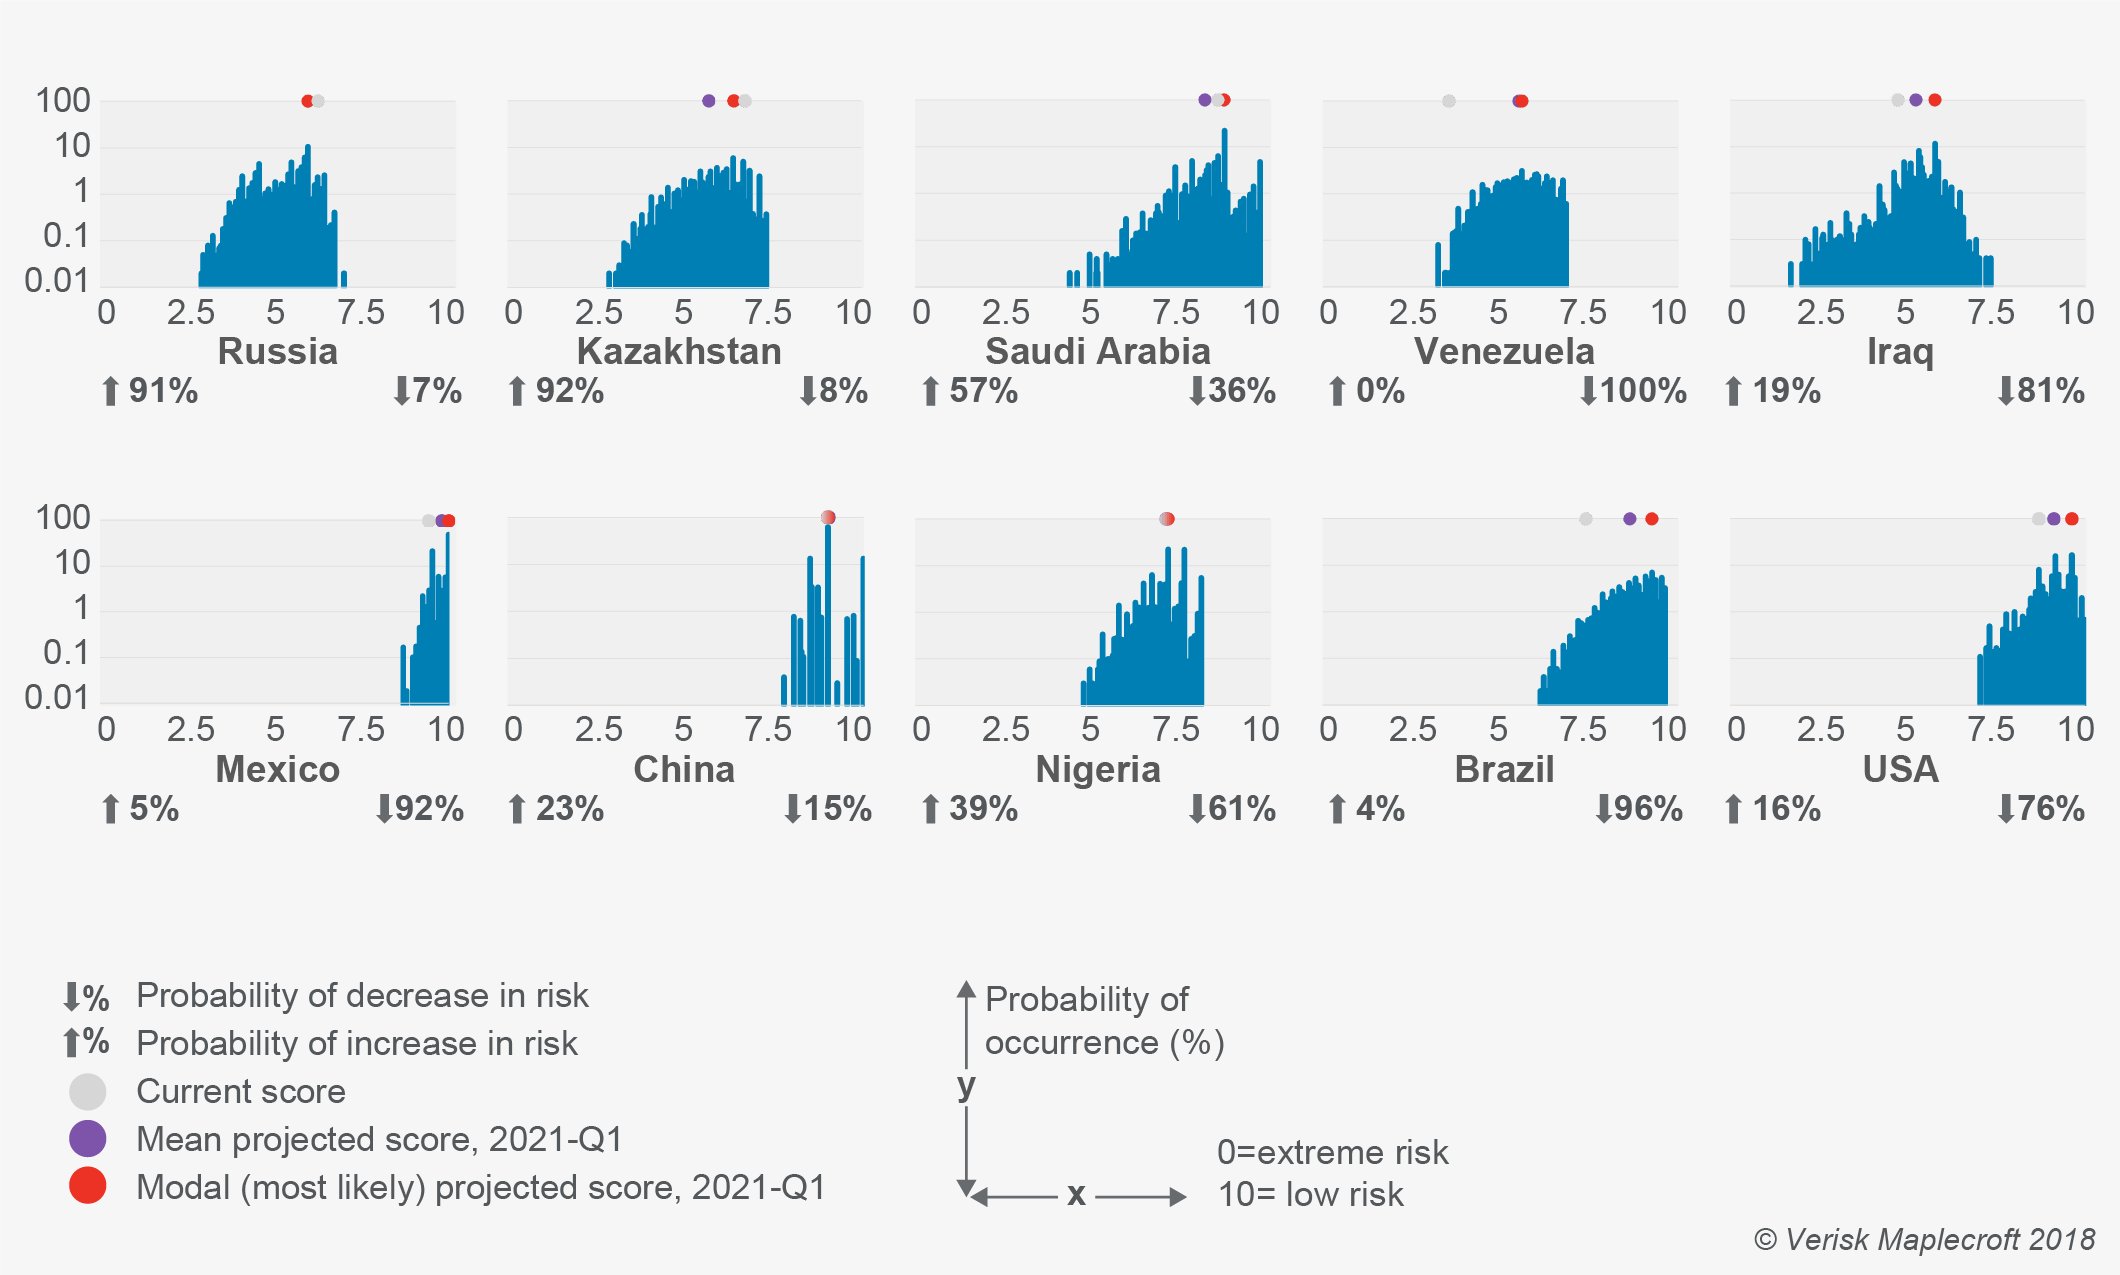 Uncertainty and downside risks to prevail among major oil producers